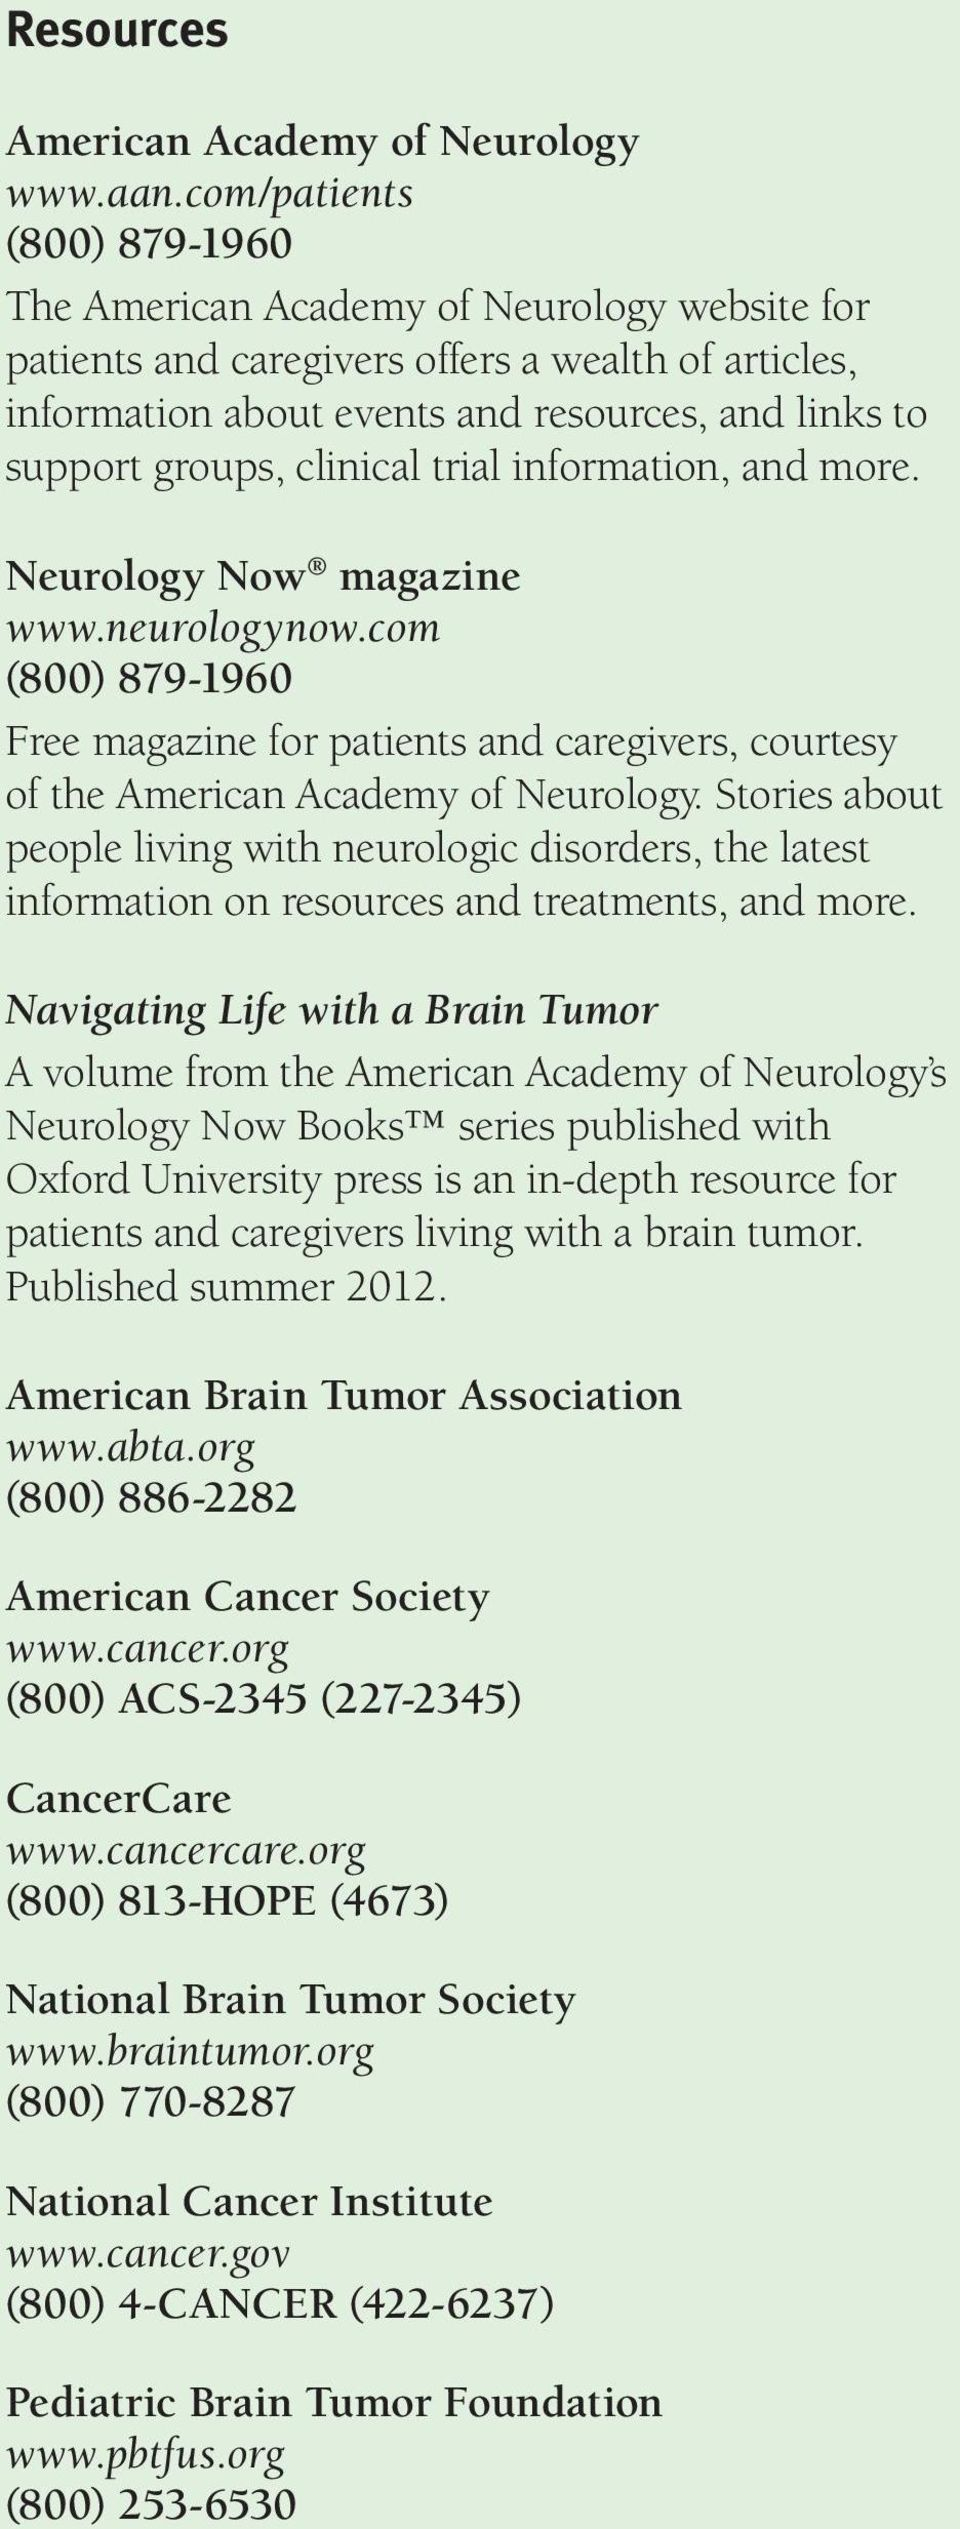 clinical trial information, and more. Neurology Now magazine www.neurologynow.com (800) 879-1960 Free magazine for patients and caregivers, courtesy of the American Academy of Neurology.